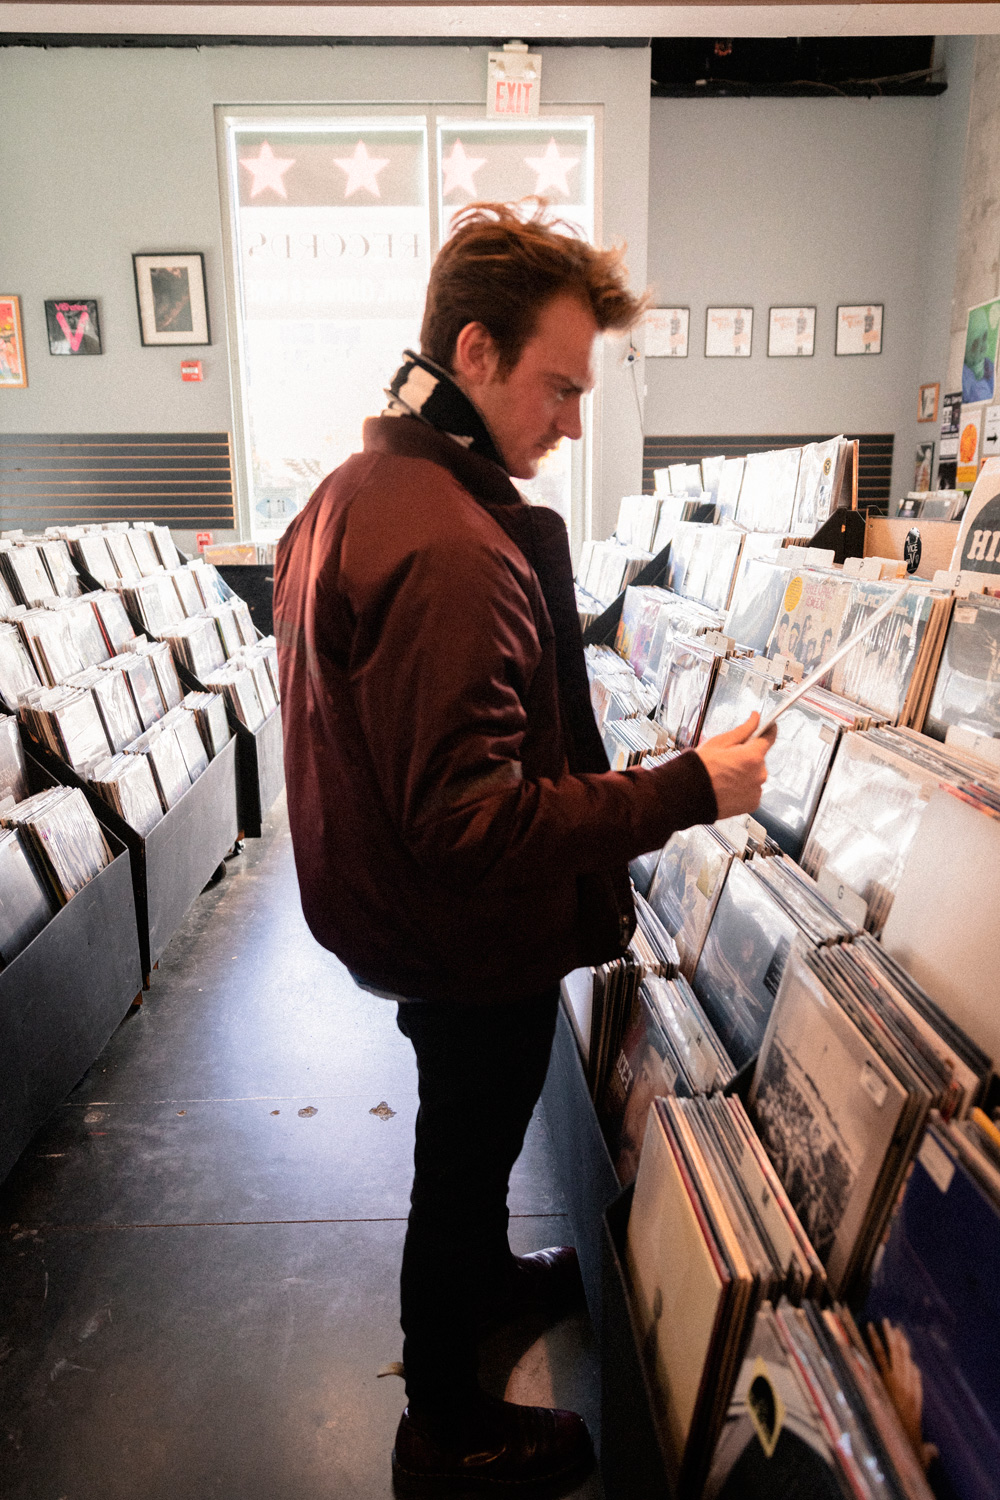 Record Shopping with Finneas